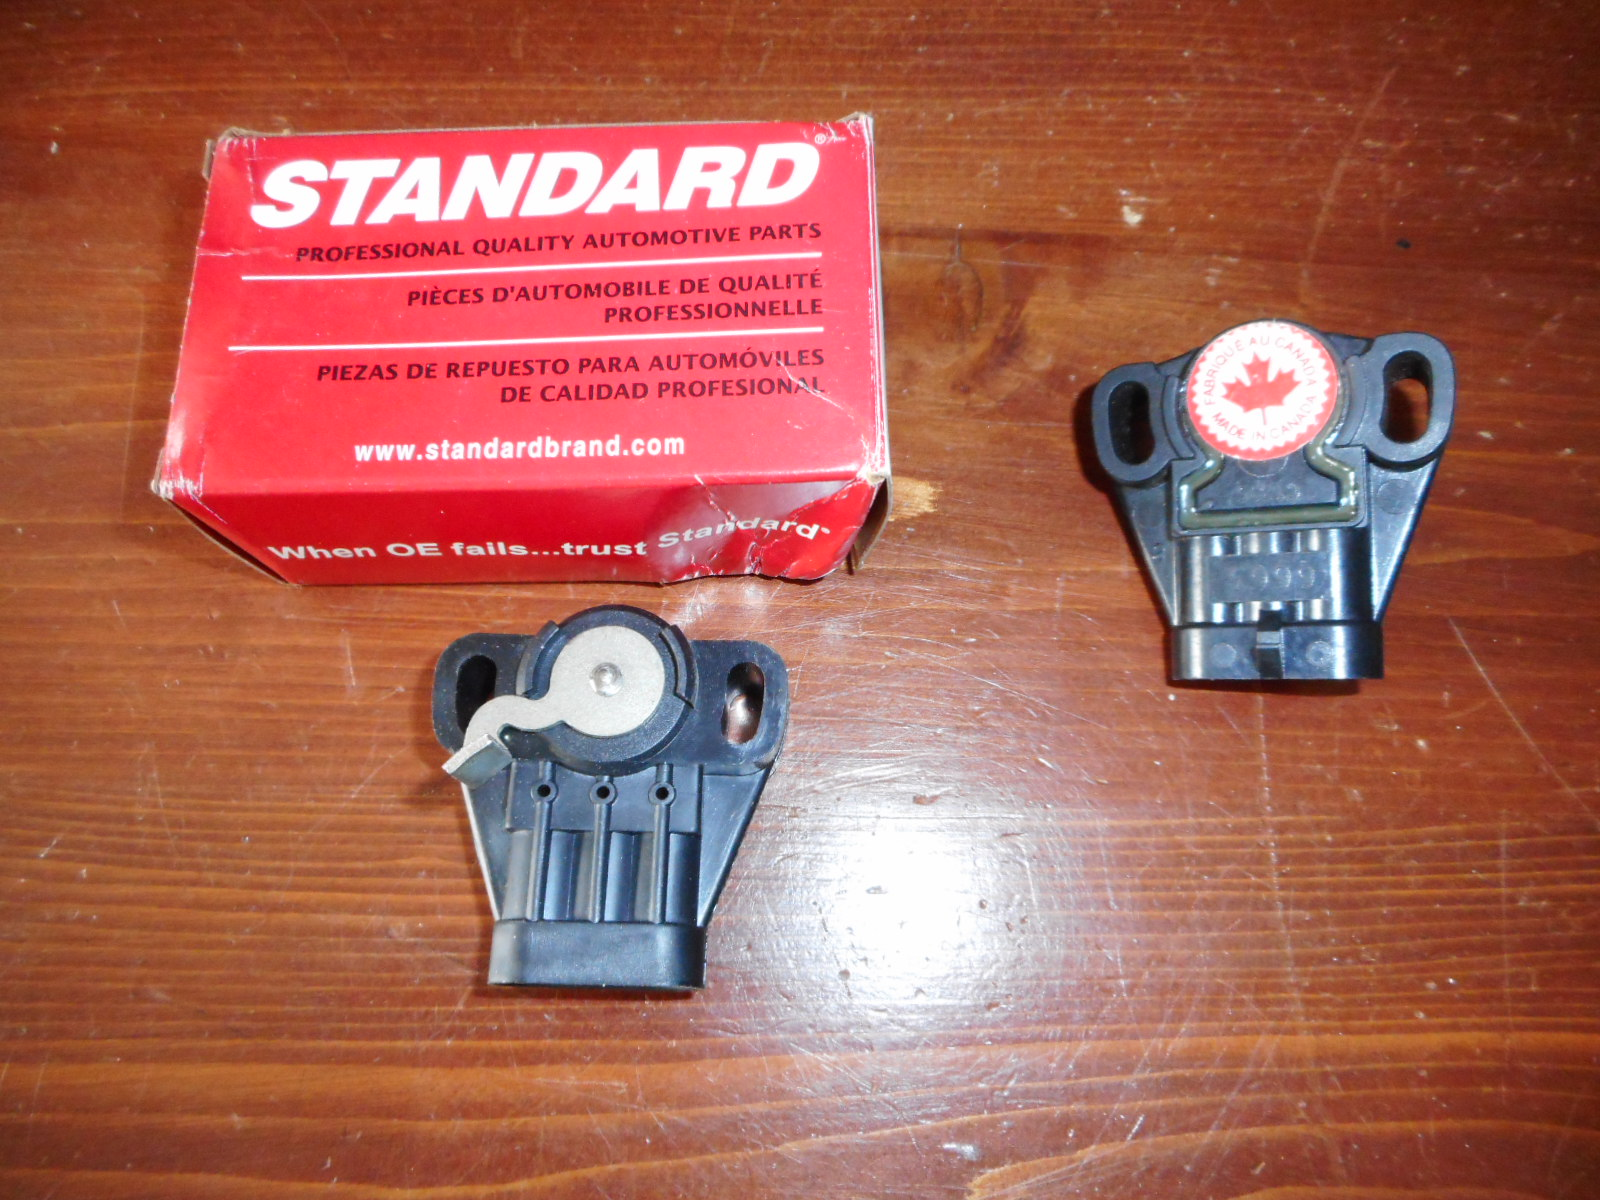 Throttle Position Sensors #2503663 4 sale-dscn1338.jpg